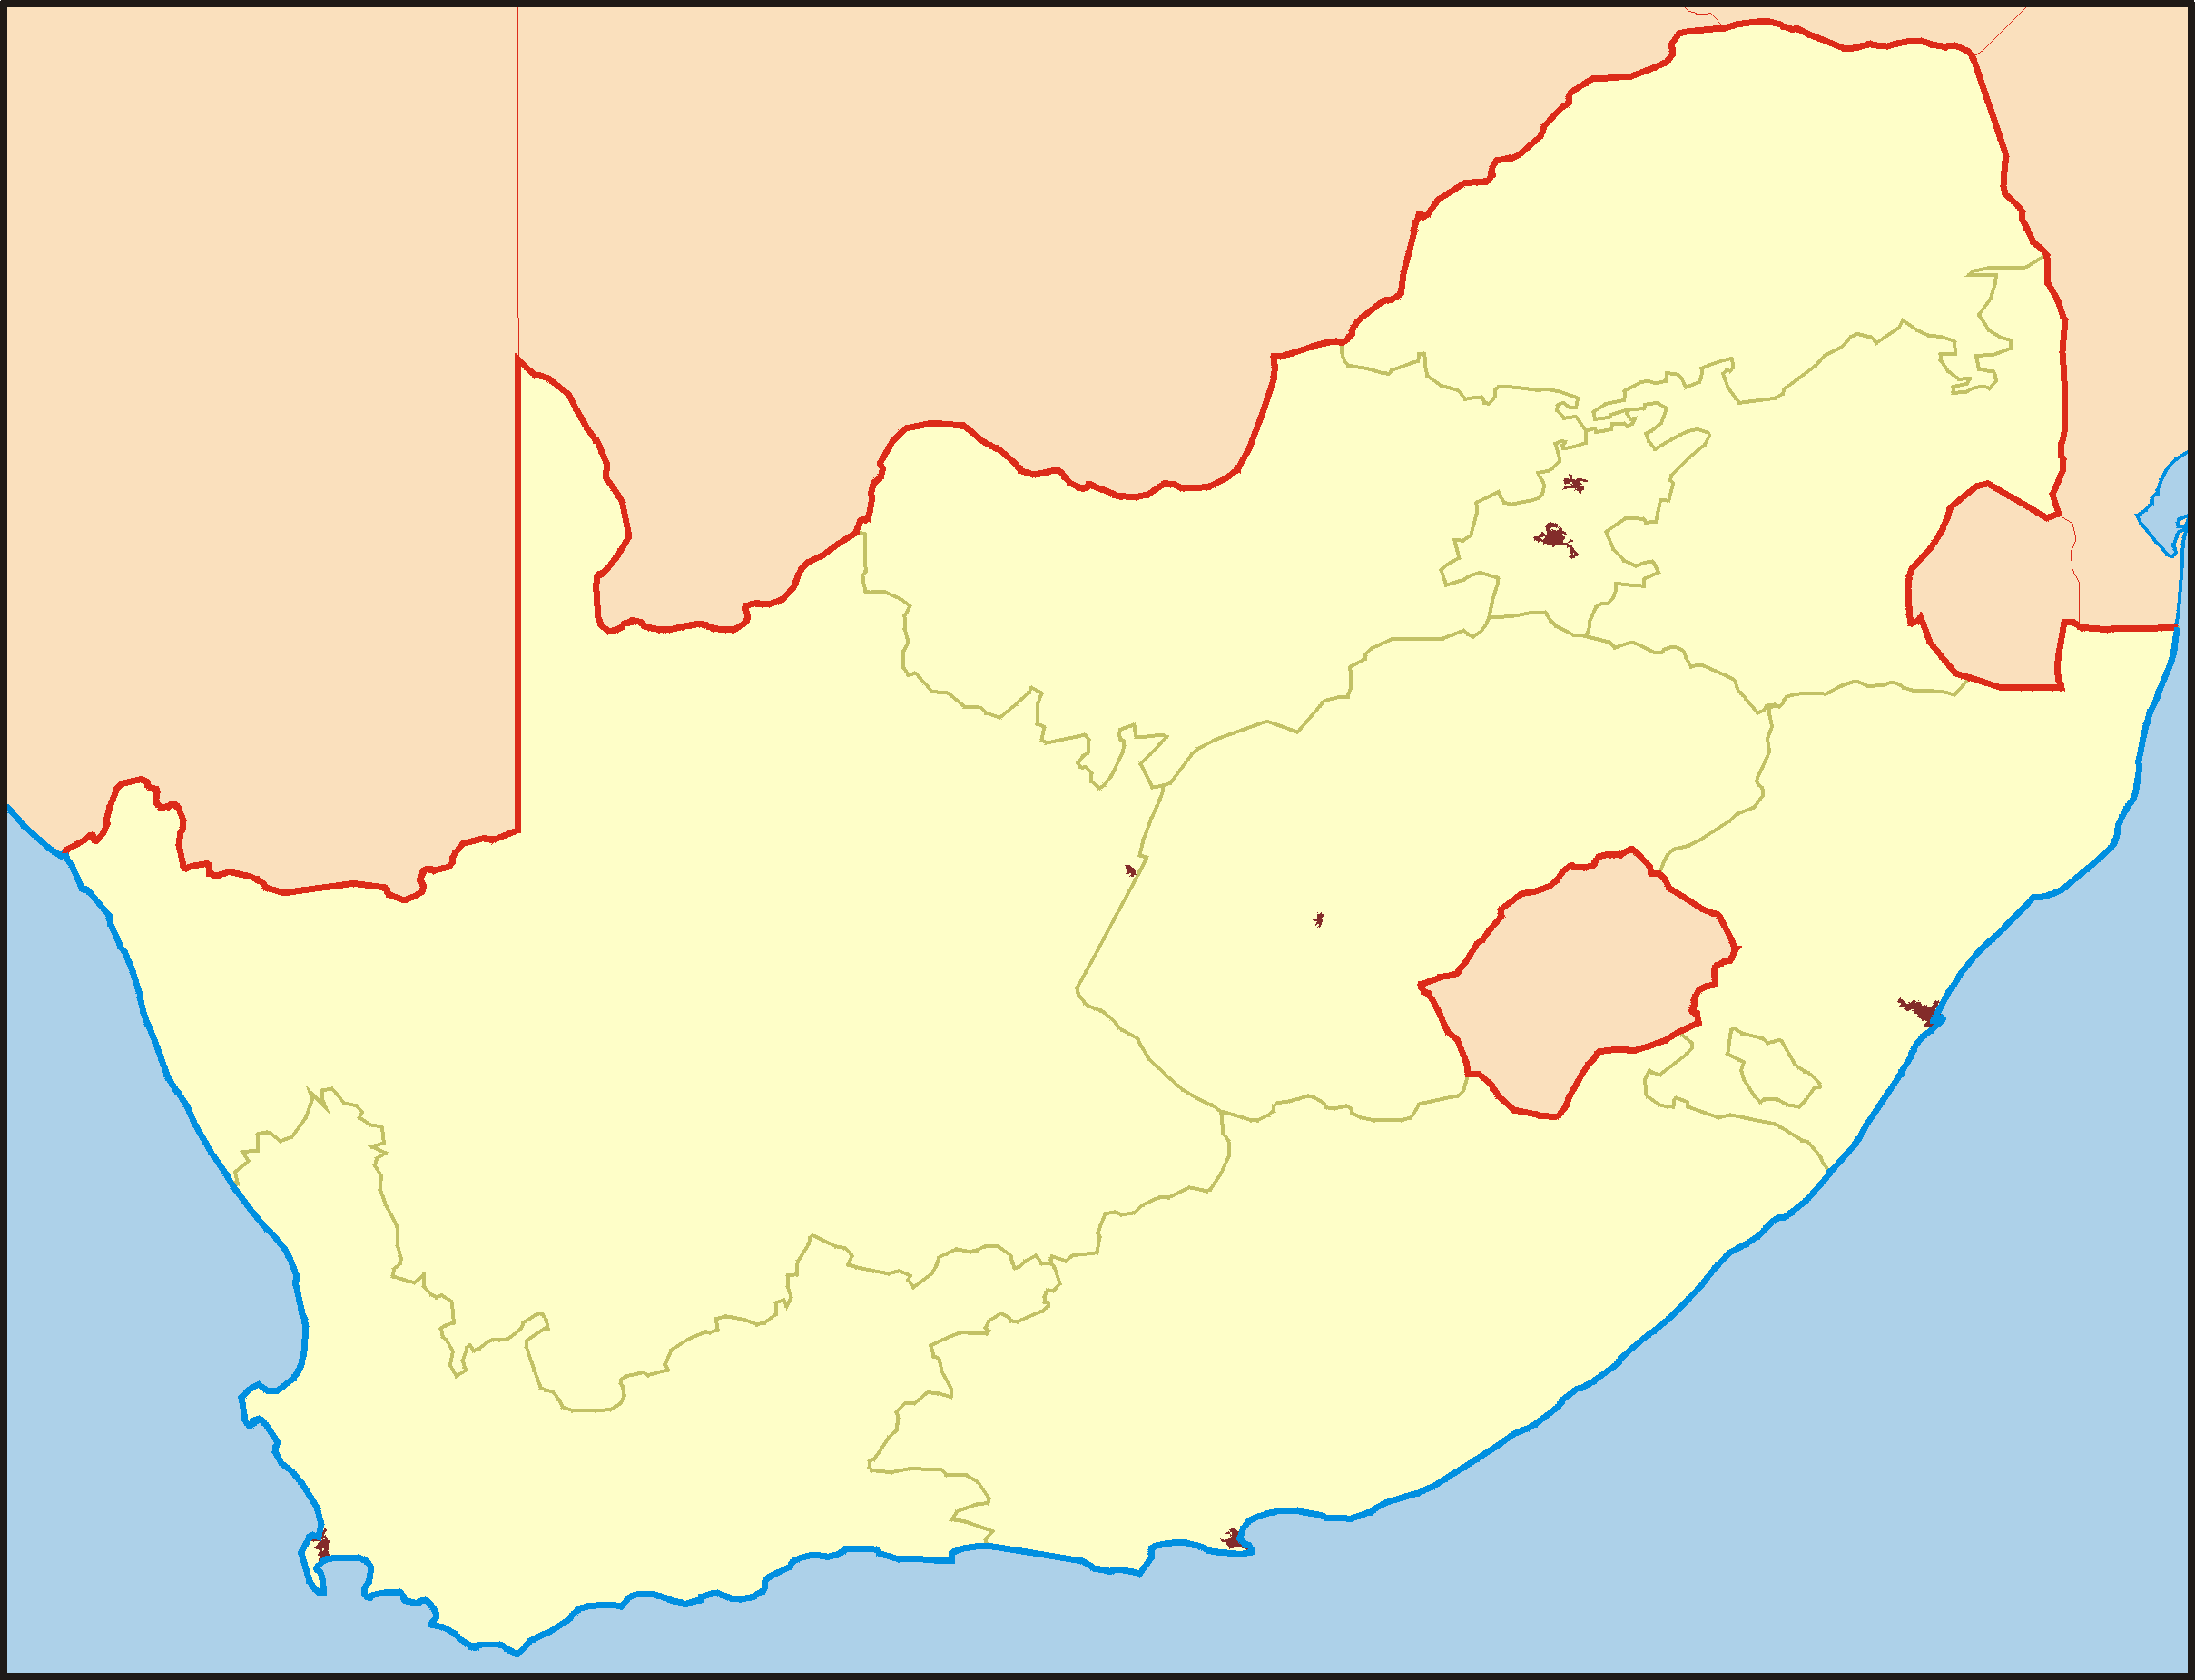 South Africa Ocation